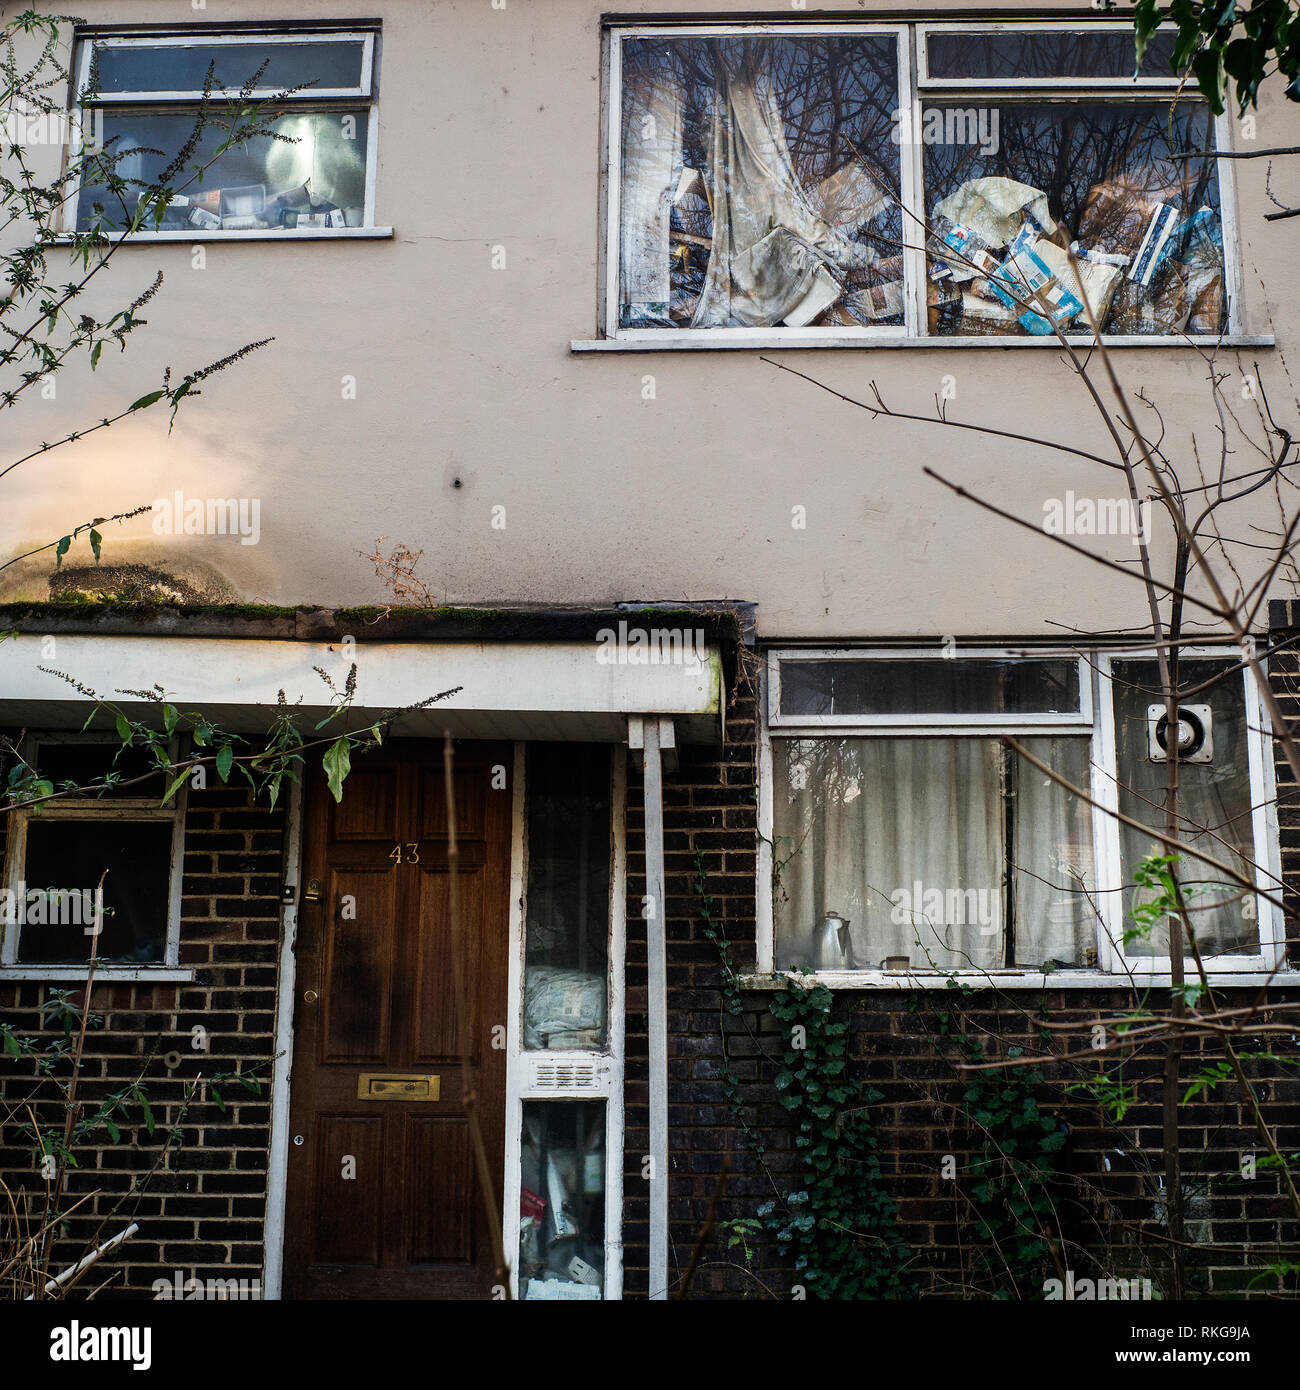 dilapidated house full of rubbish,inside house piled against window - Stock Image